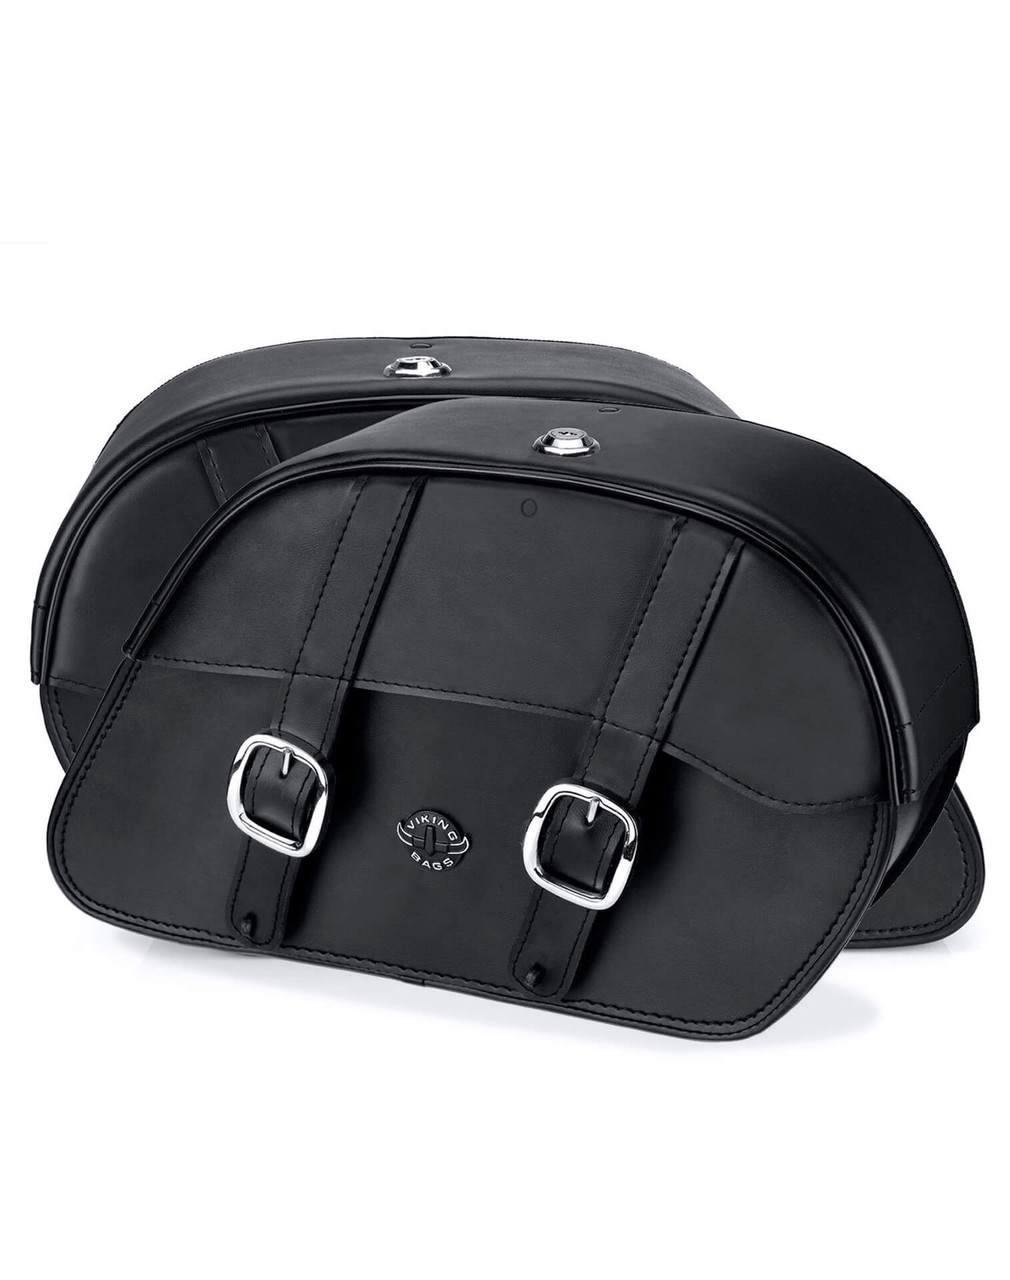 Viking Large Shock Cutout Slanted Motorcycle Saddlebags For Harley Sportster 1200 Low XL1200L Both Bags View